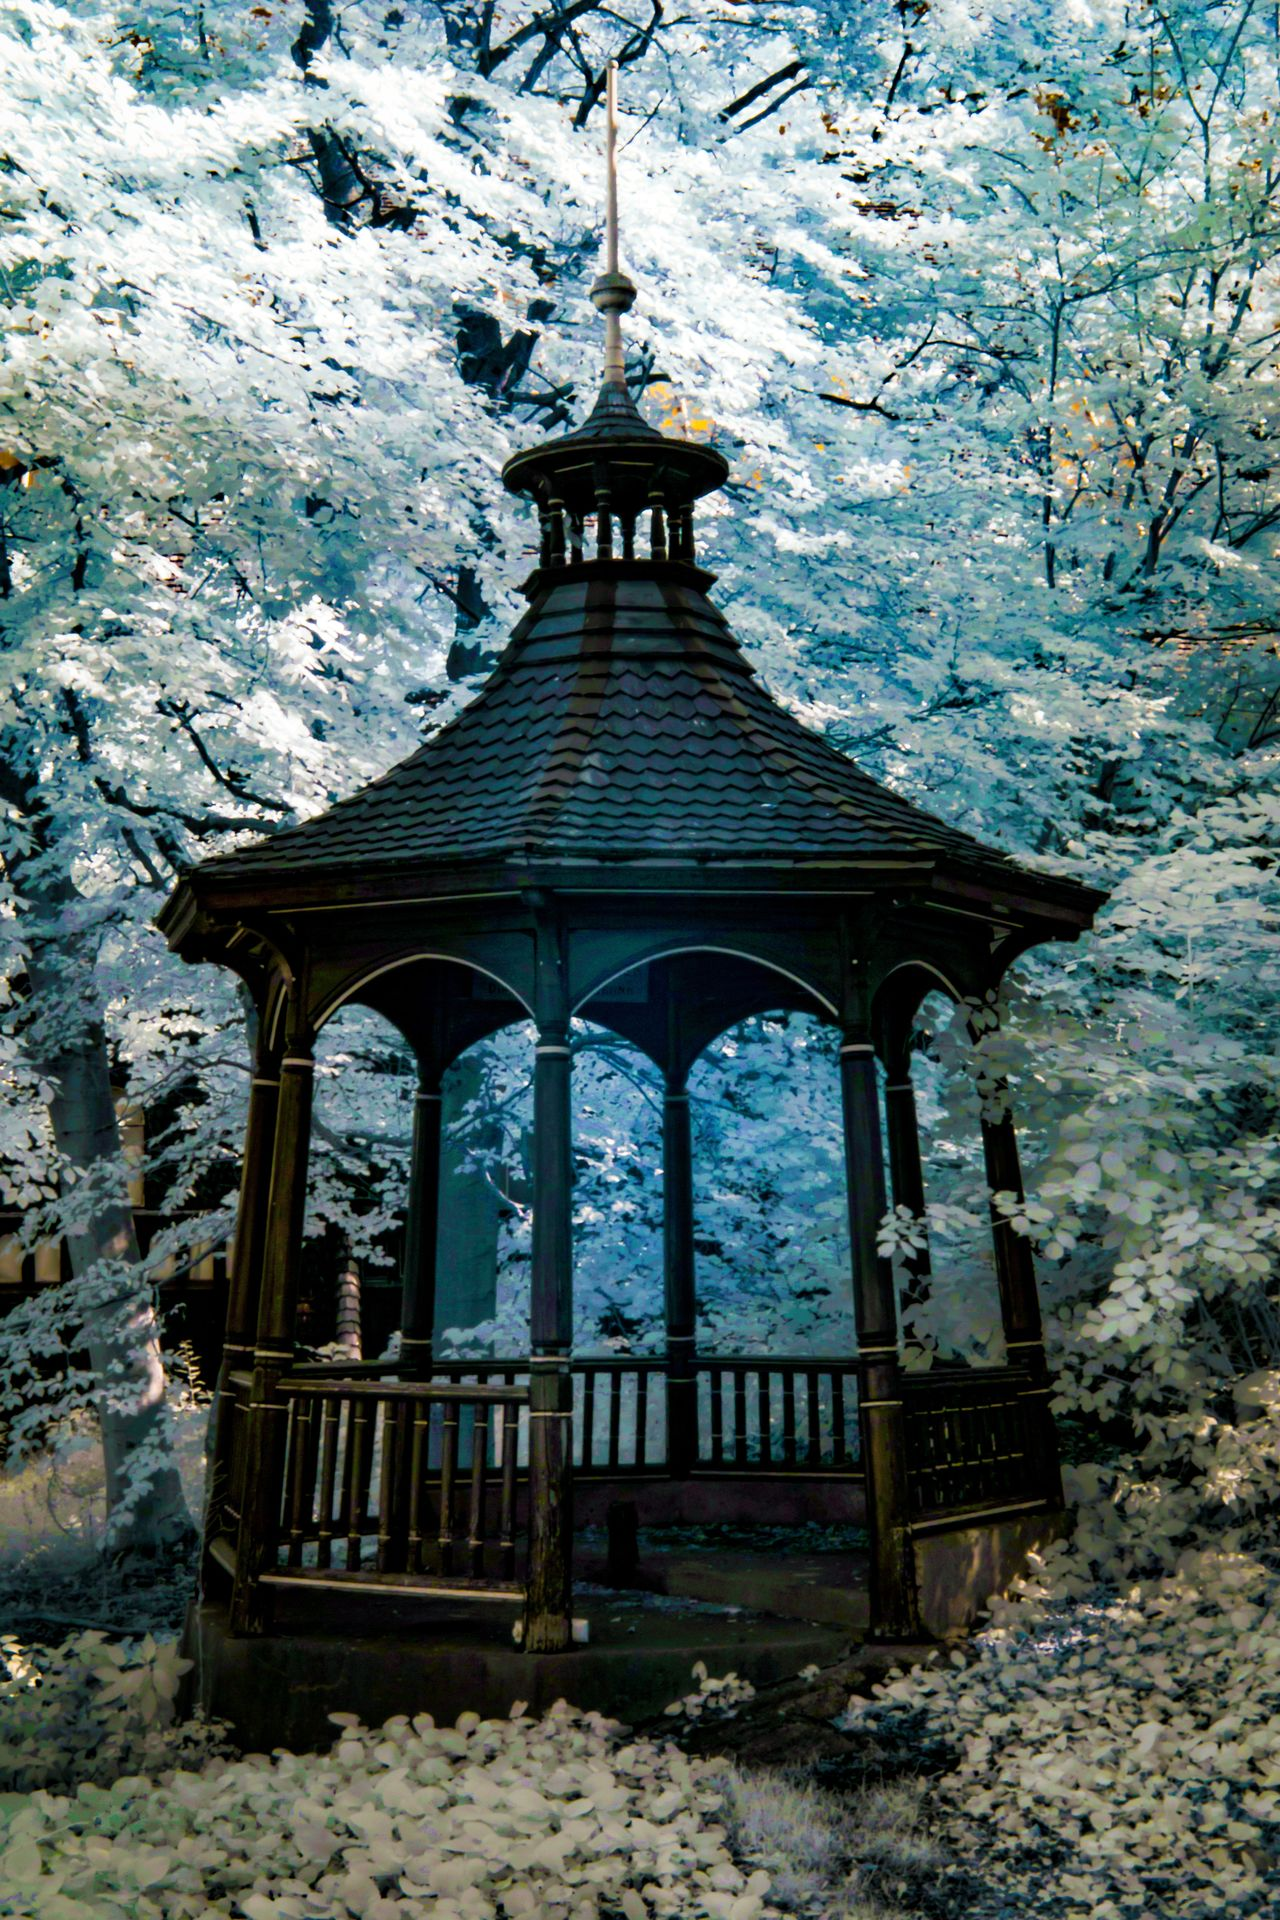 Old-Fashioned Gazebo [IR] 720nm Architecture Brown Djurgården Enchanted  Enchanted Forest Enchanted Path Woods Forest Fine Art Photography Flowers Foliage Forest Gazebo Infrared Infrared Photography Old Fashioned Pastel Power Pavilion Shade Stockholm Stockholm, Sweden Travel Wooden Woods I ♥ Photography EyeEm Best Shots